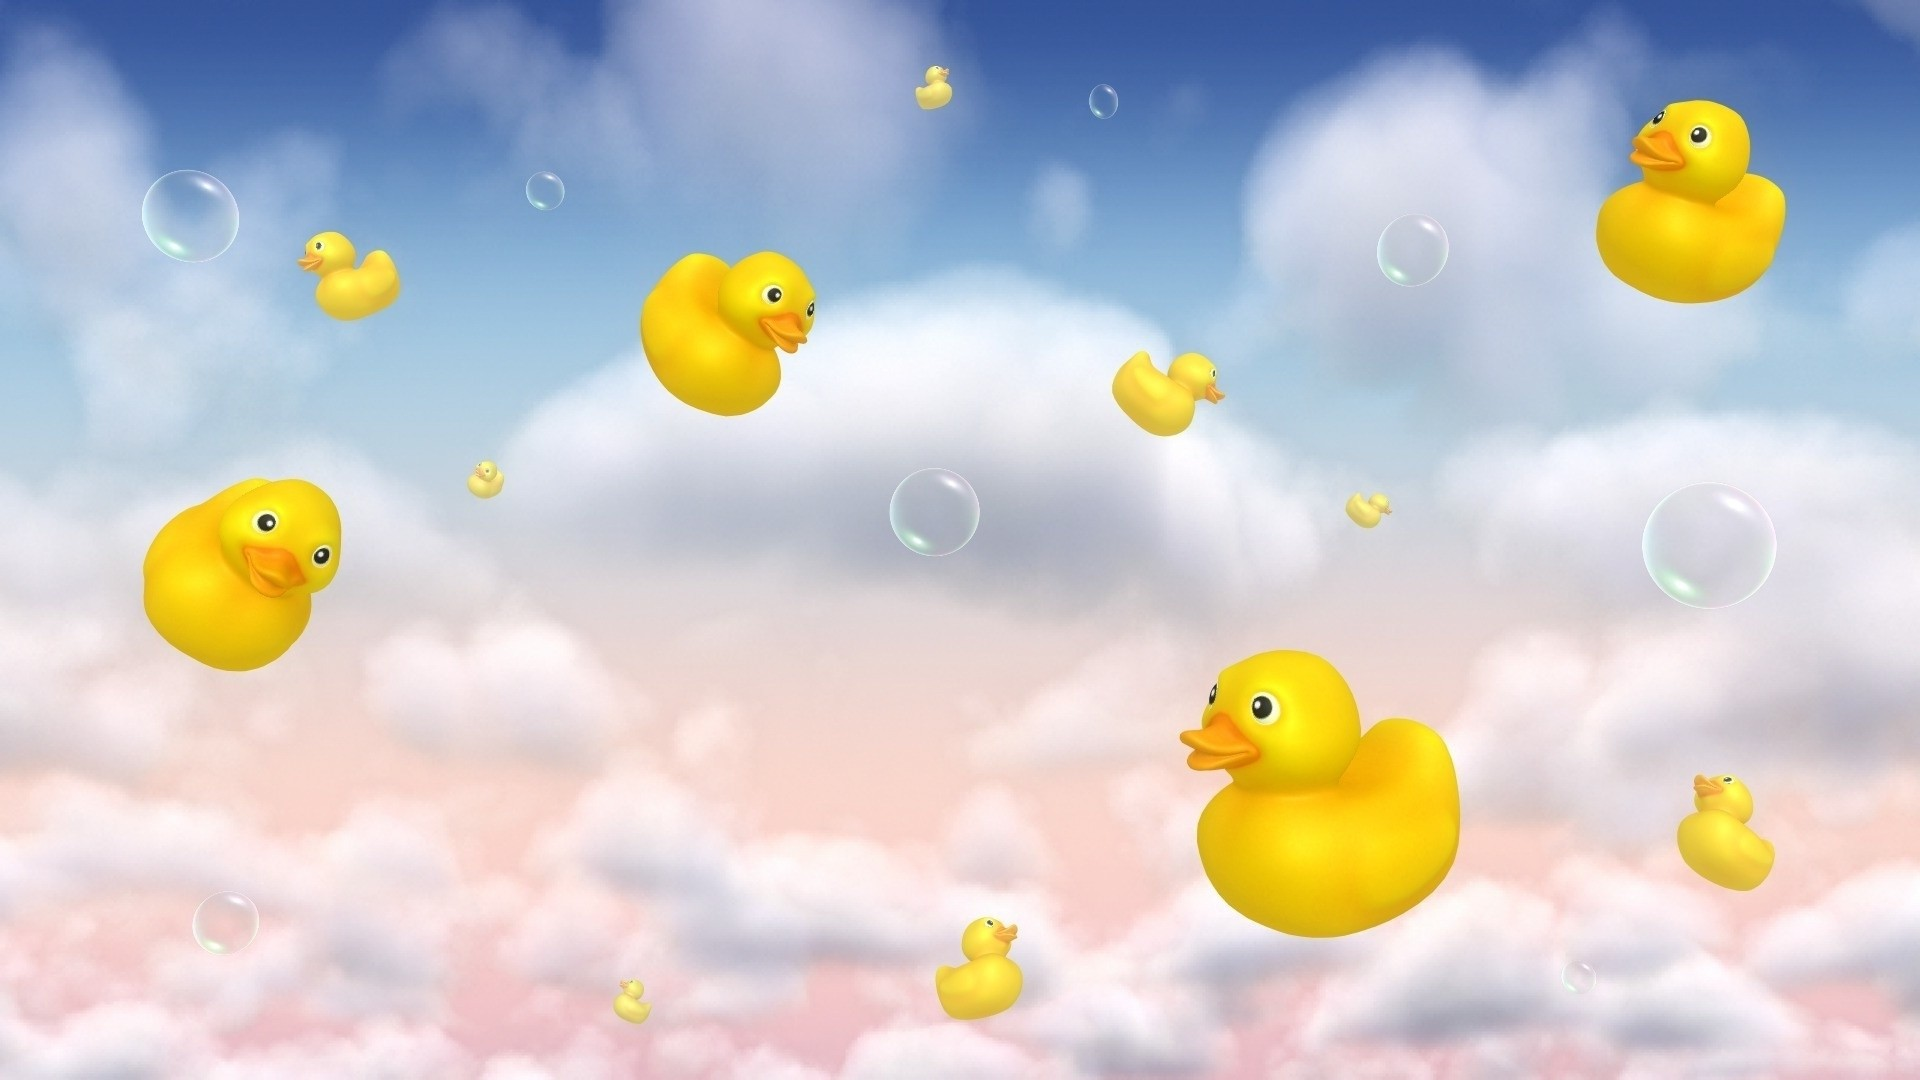 Floating rubber ducks and bubbles HD Wallpaper 1920×1080